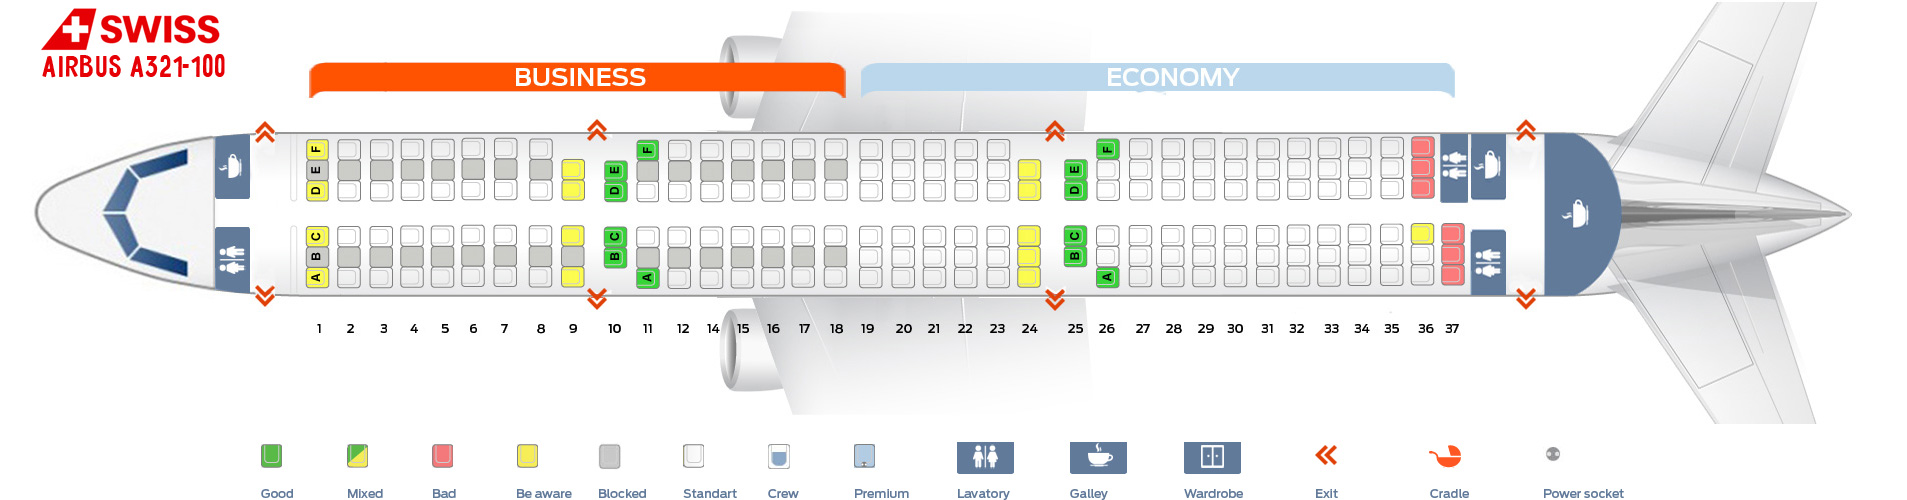 Seat Map Airbus A321-100 Swiss Airlines